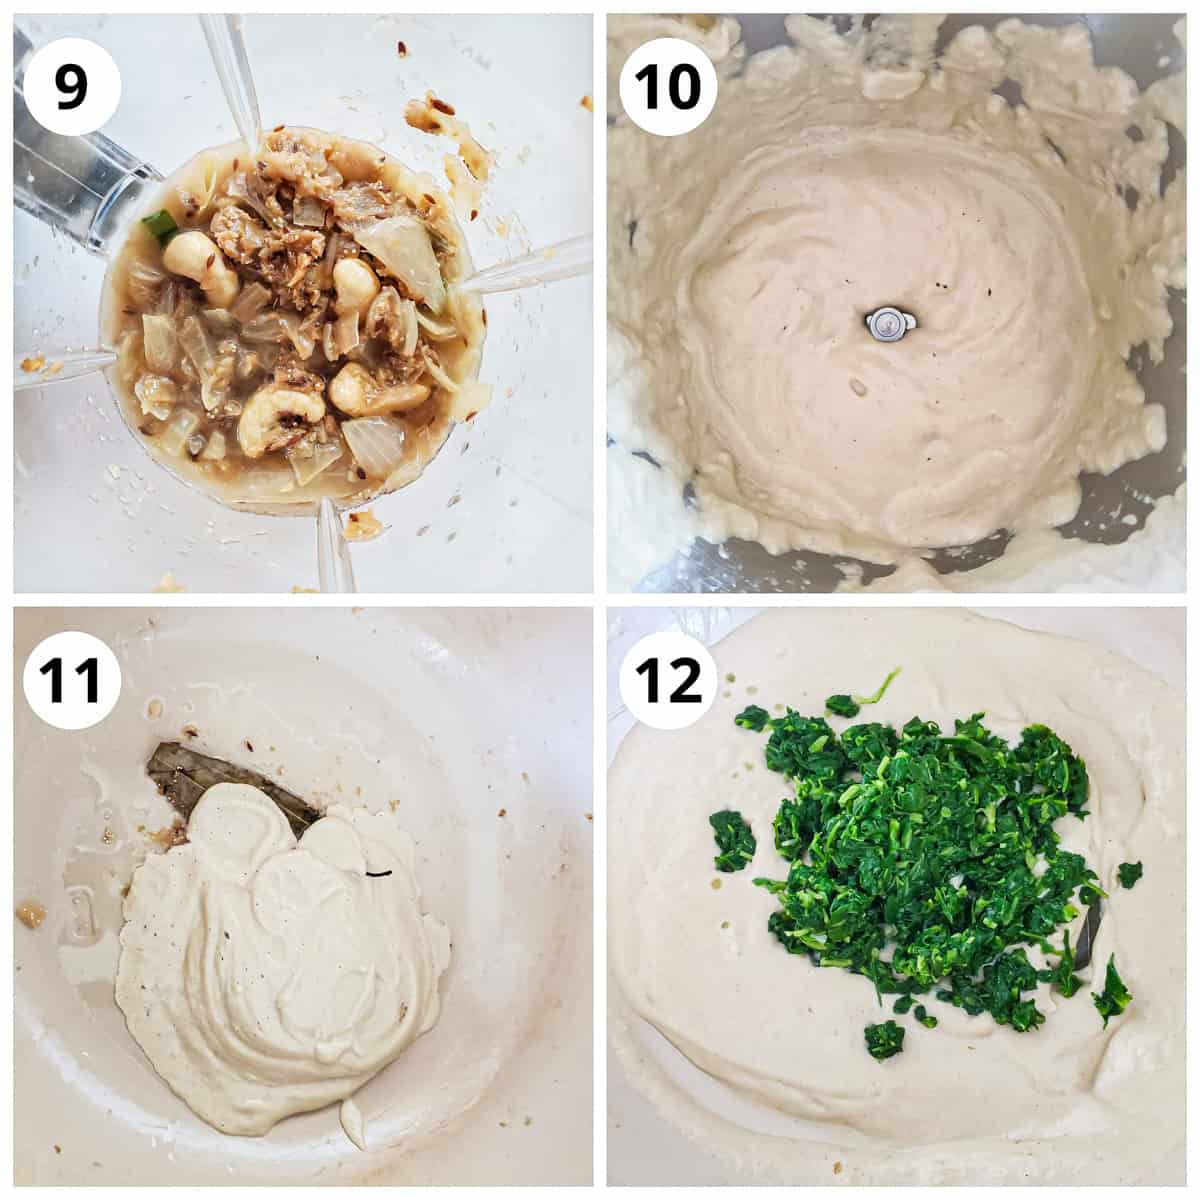 Steps for making onion cashew paste and cooking with boiled methi